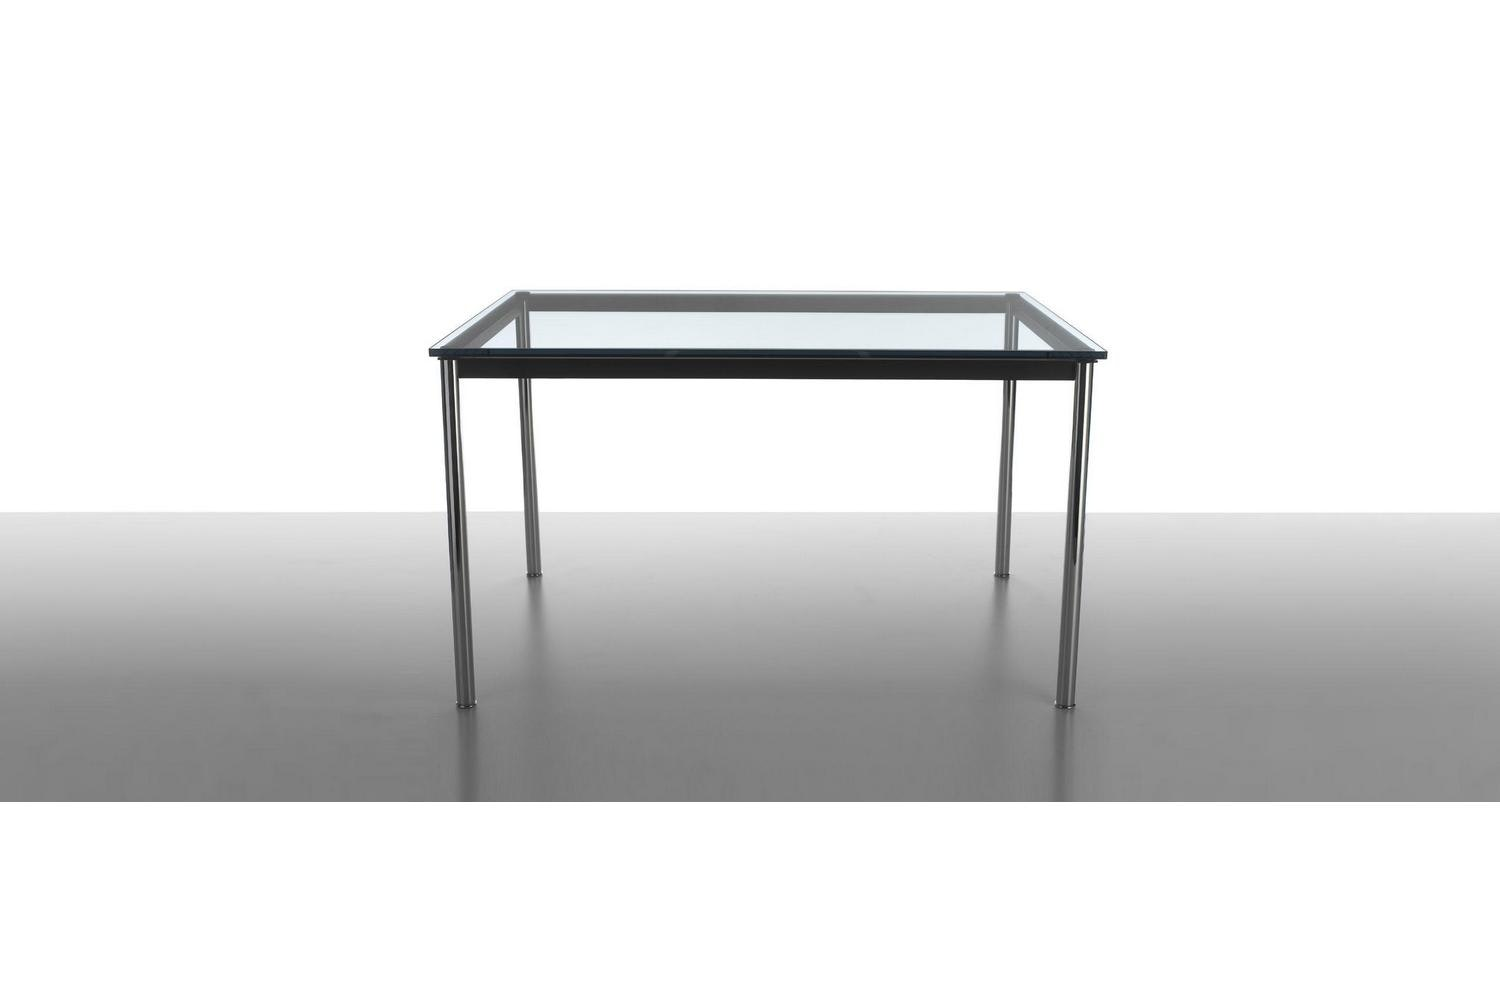 LC10-P Table by Le Corbusier, Pierre Jeanneret, Charlotte Perriand for Cassina